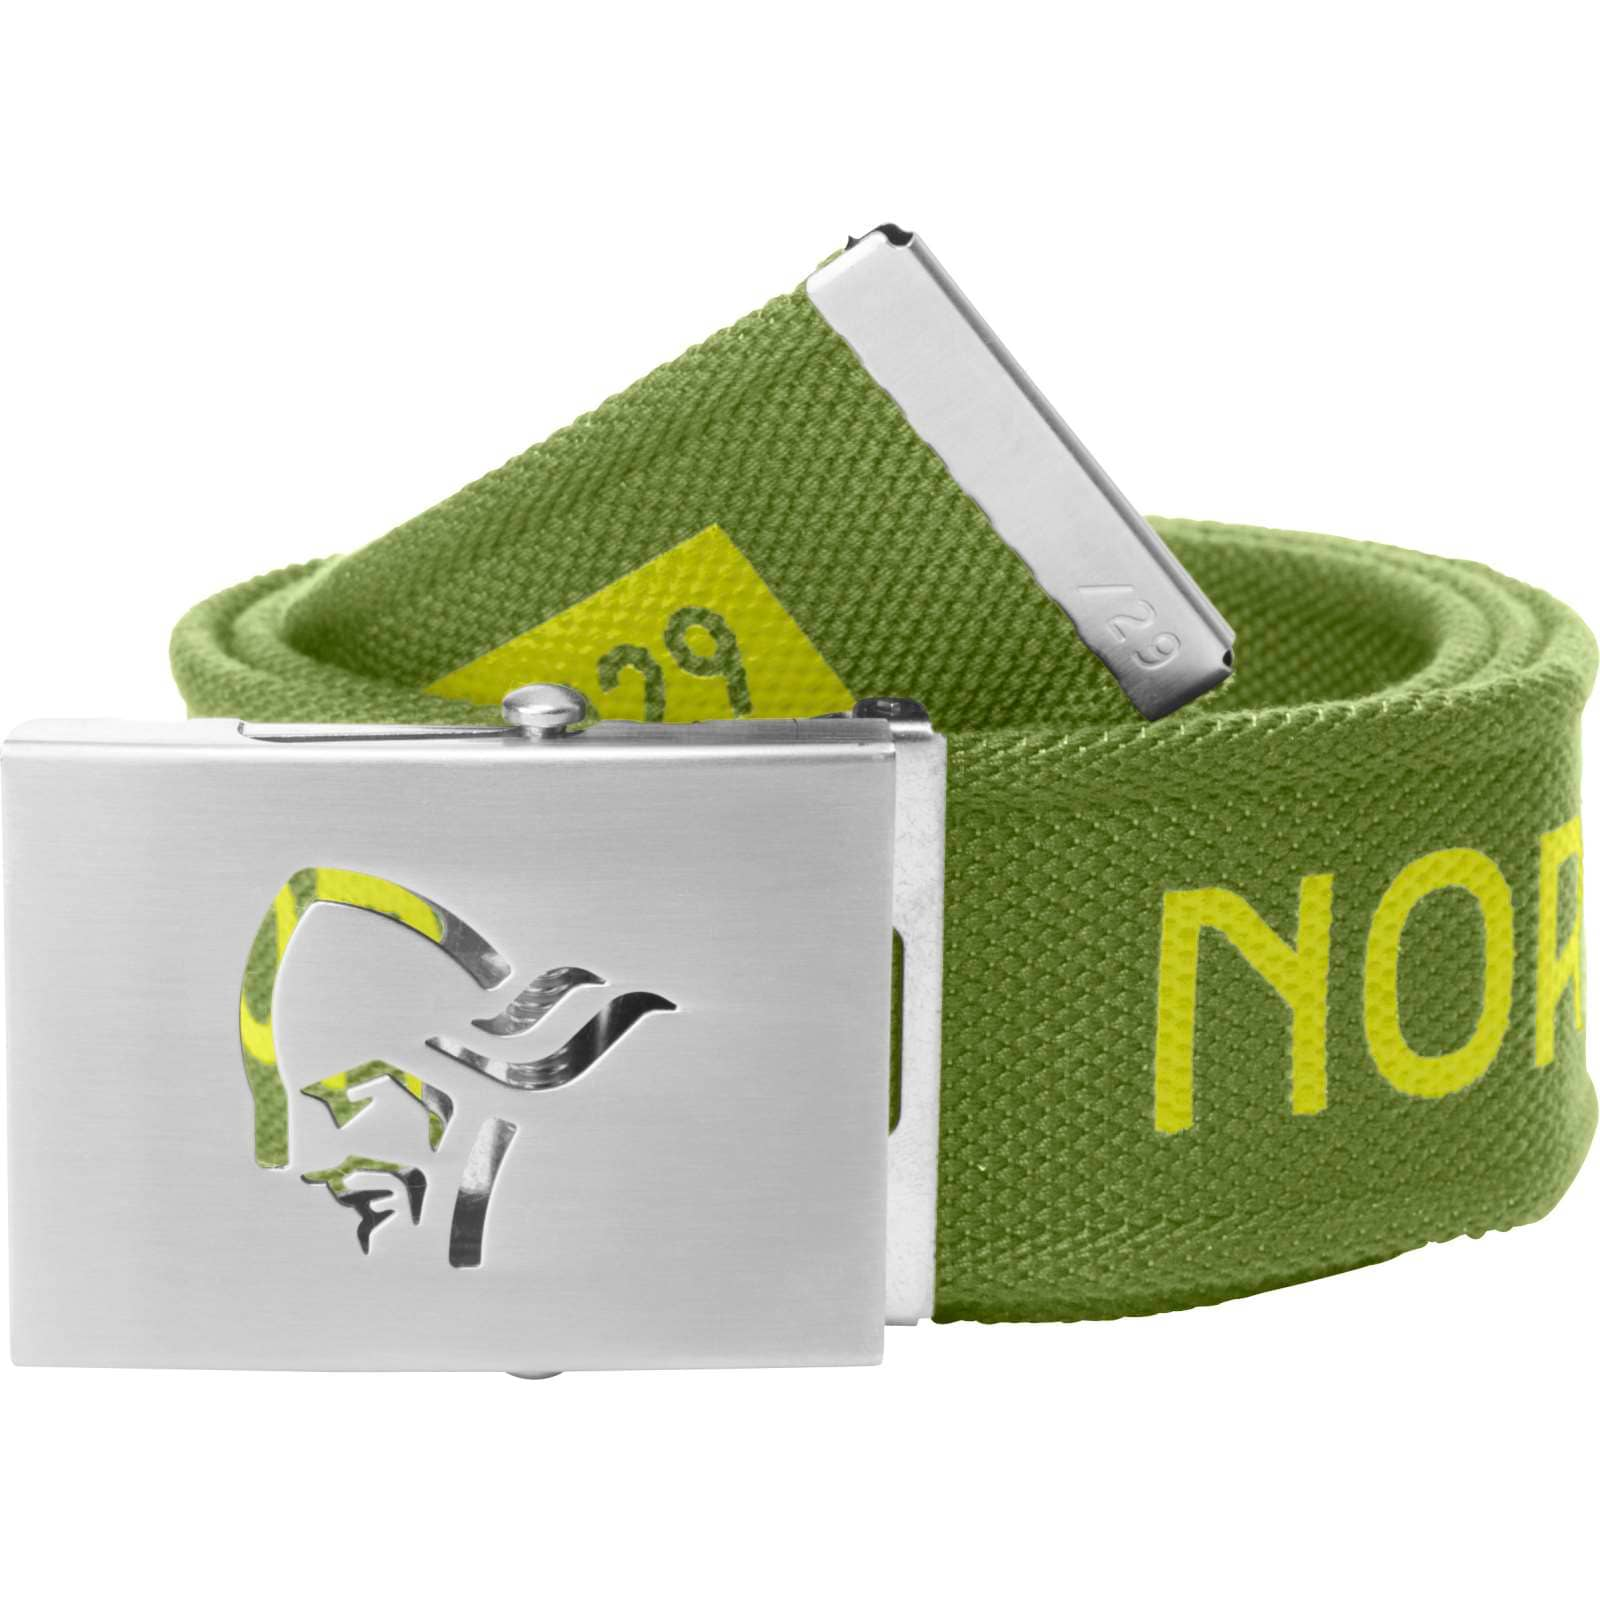 201391e9282 Buy Norrøna  29 viking web clip Belt from Outnorth